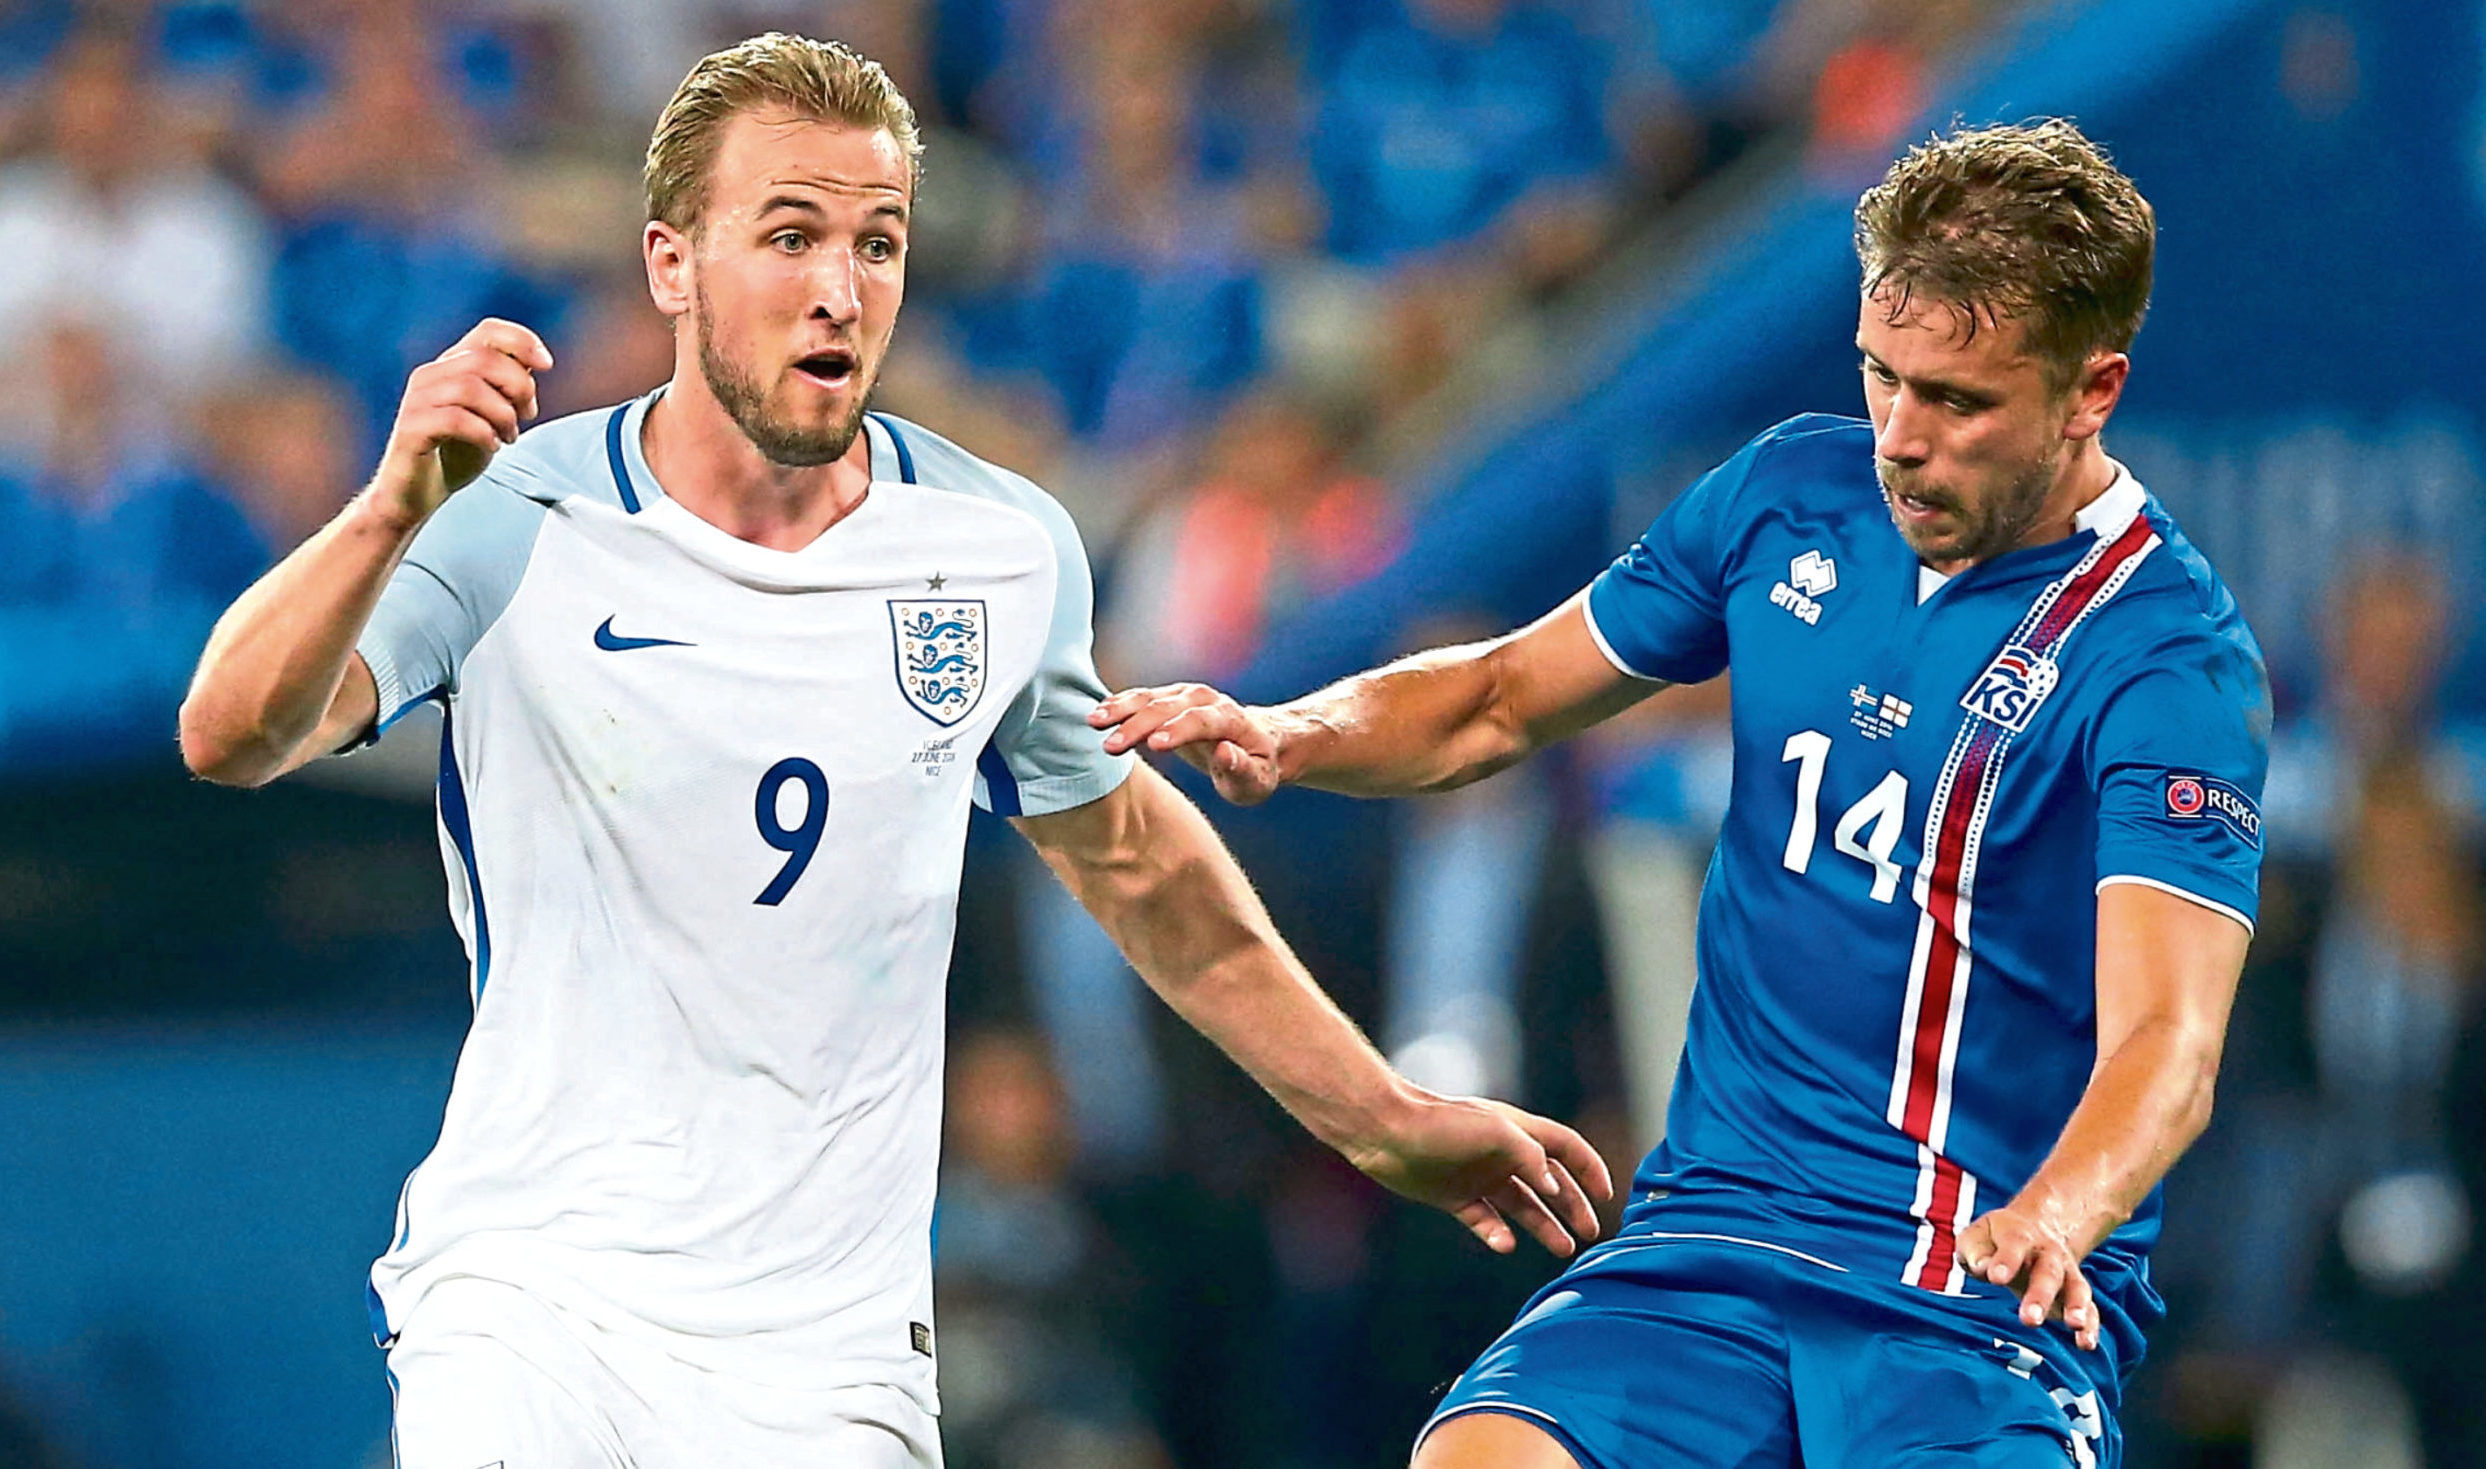 Arnason kept Harry Kane quiet when Iceland met England at the Euros